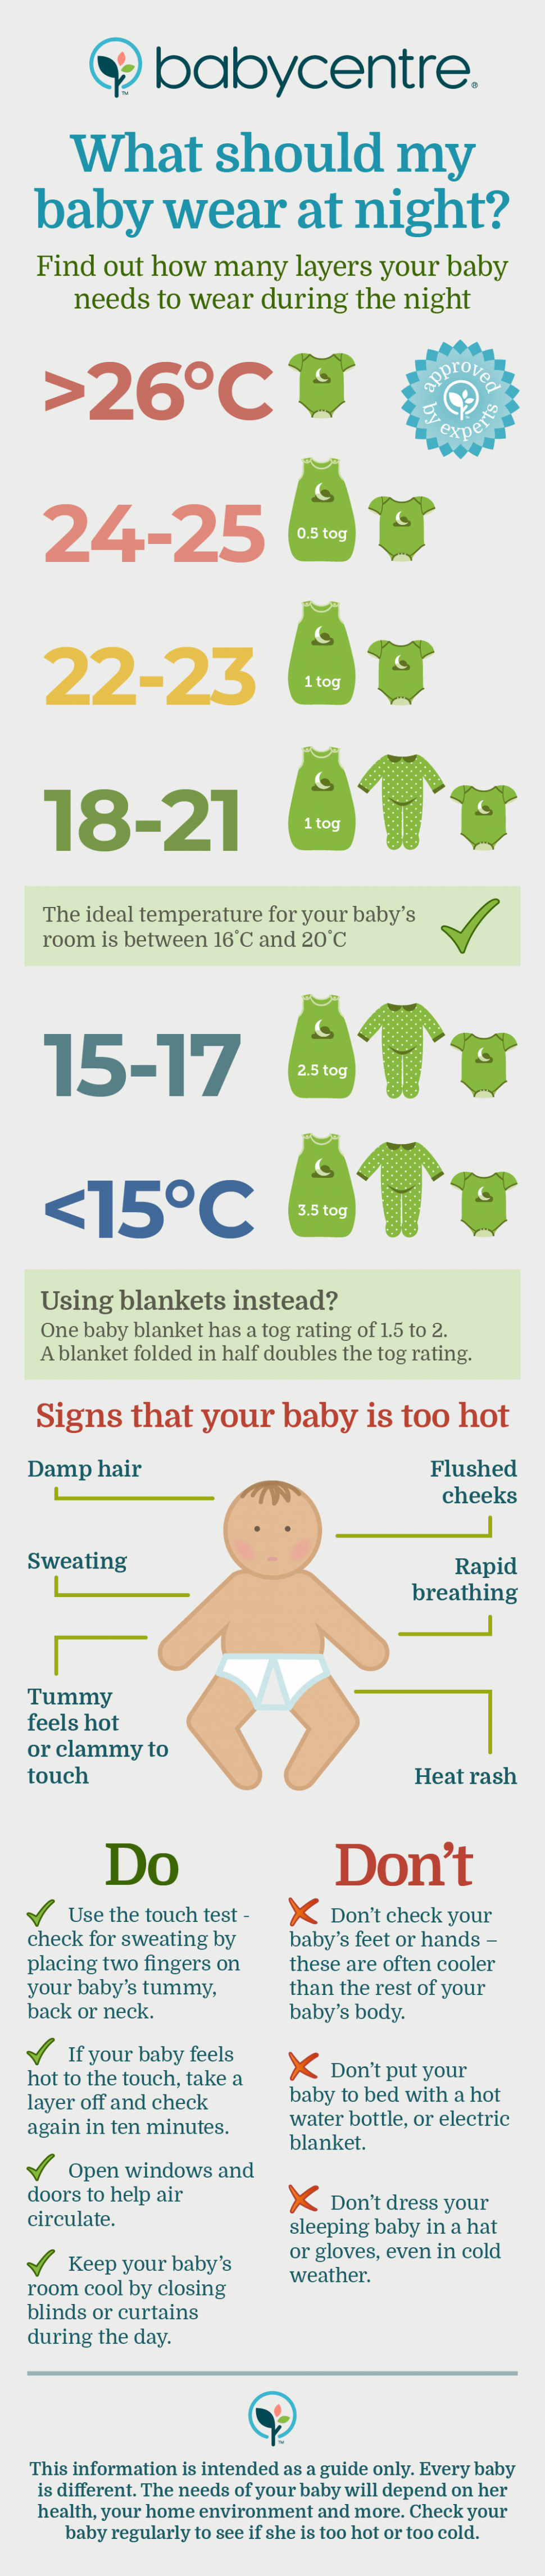 What should my baby wear at night? (Infographic) - BabyCentre UK - baby room temperature